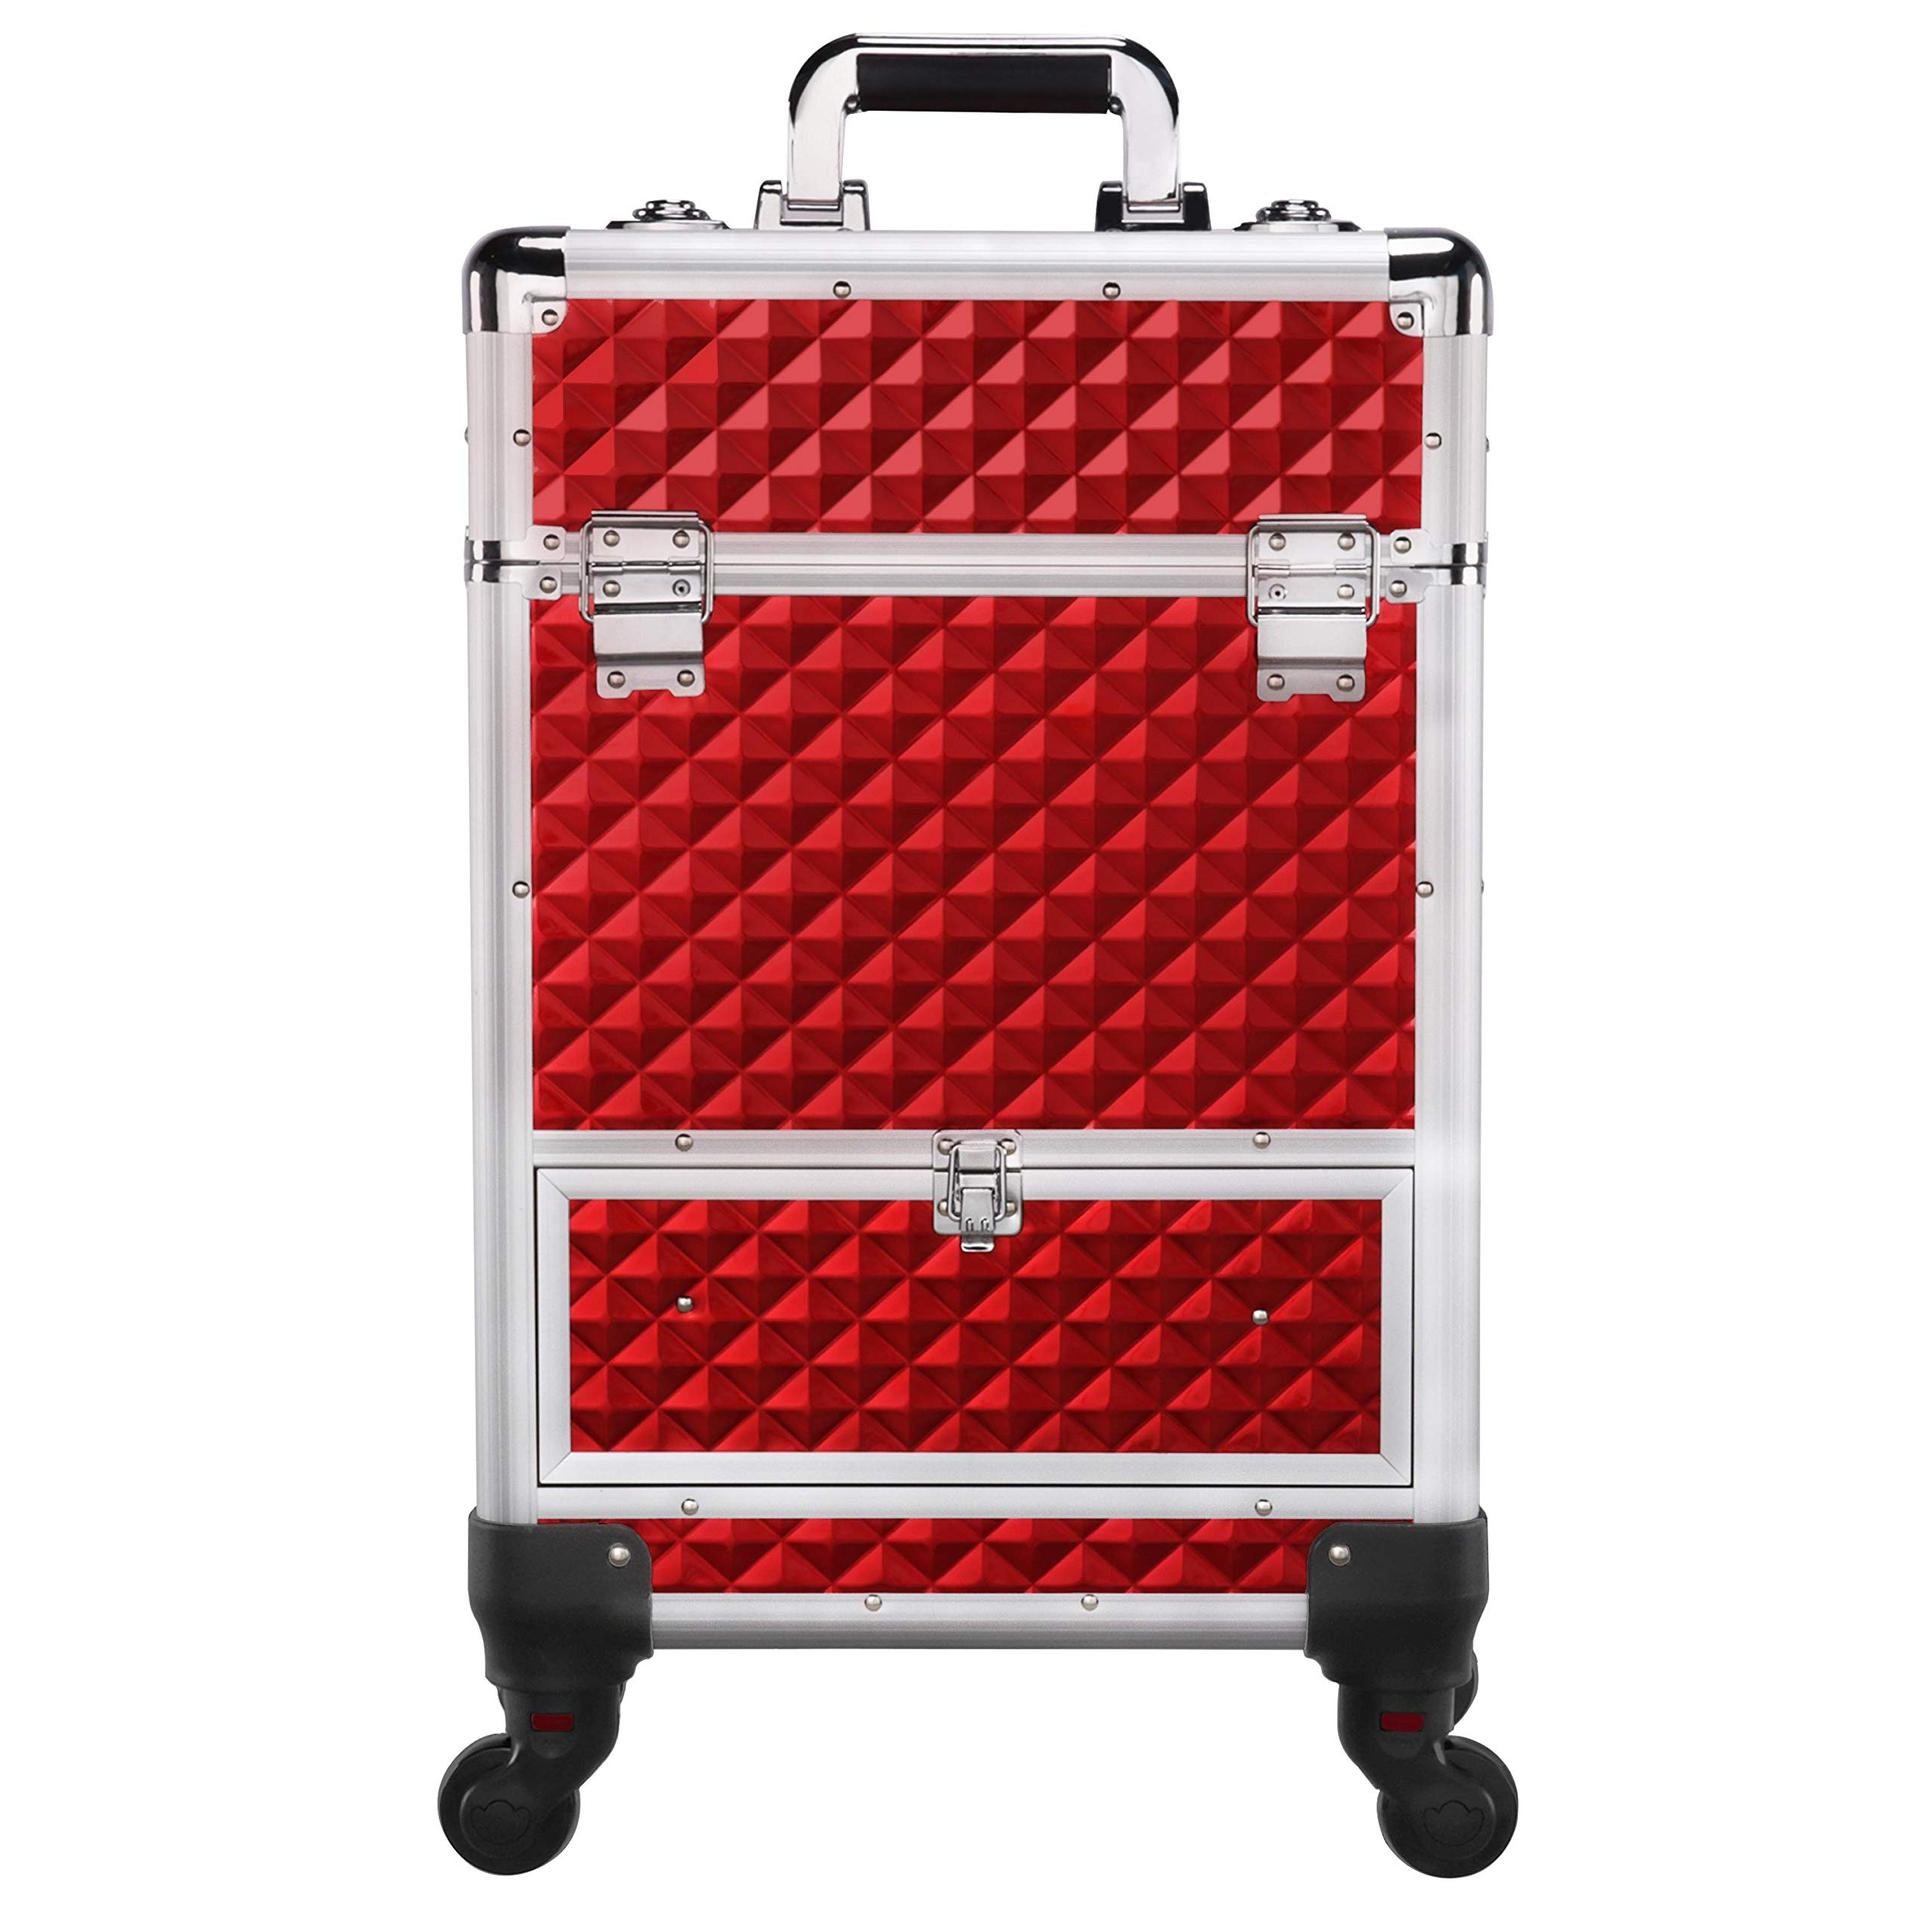 Yaheetech Rolling Aluminum Red Make Up Case - Cosmetic Trolley Train Case Sliding Drawer With 4 Retractable Trays